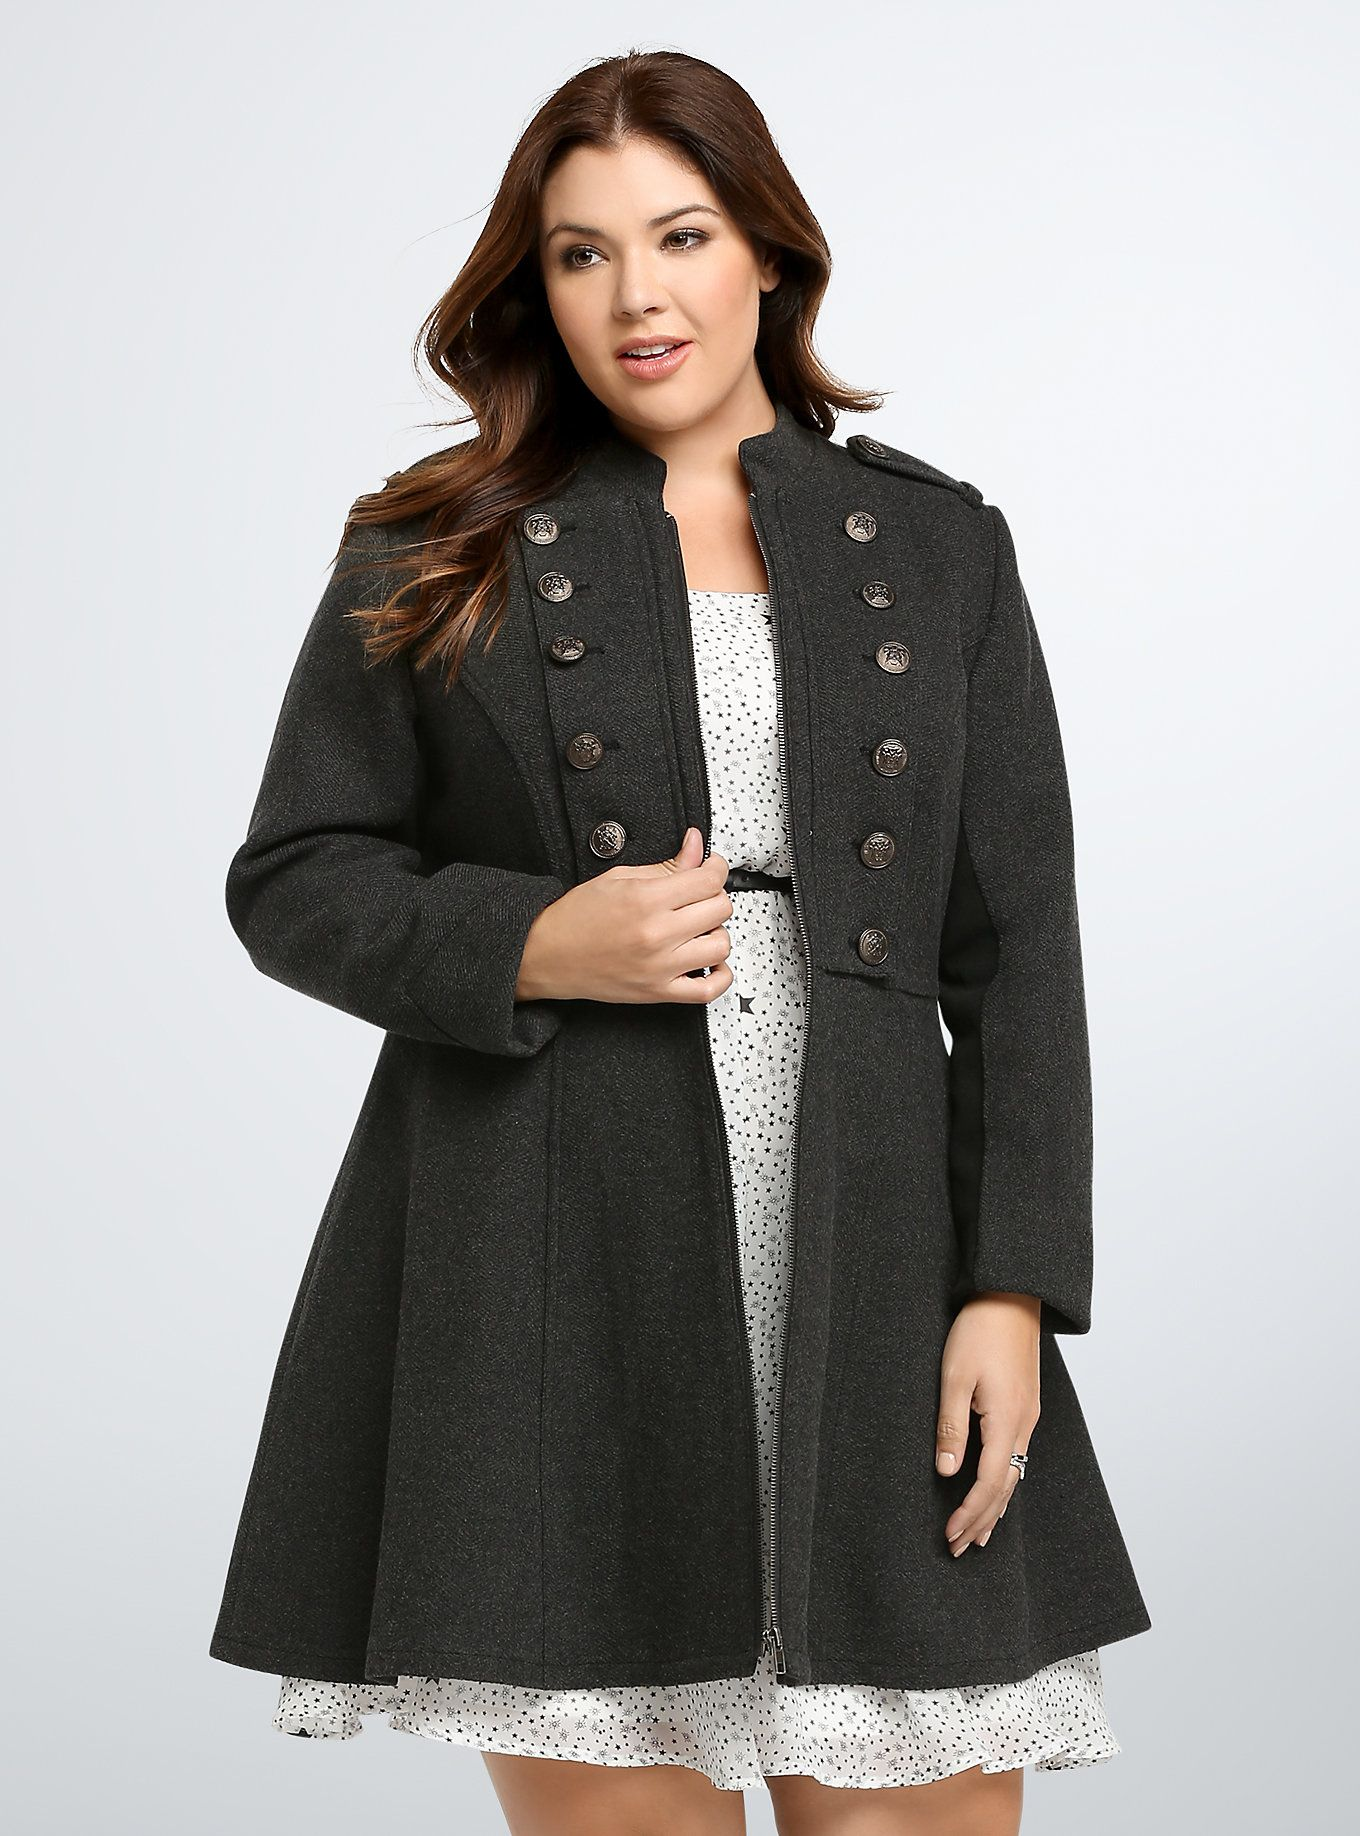 Tie Neck Peplum Blazer | Women's Plus Size Coats   Jackets ...